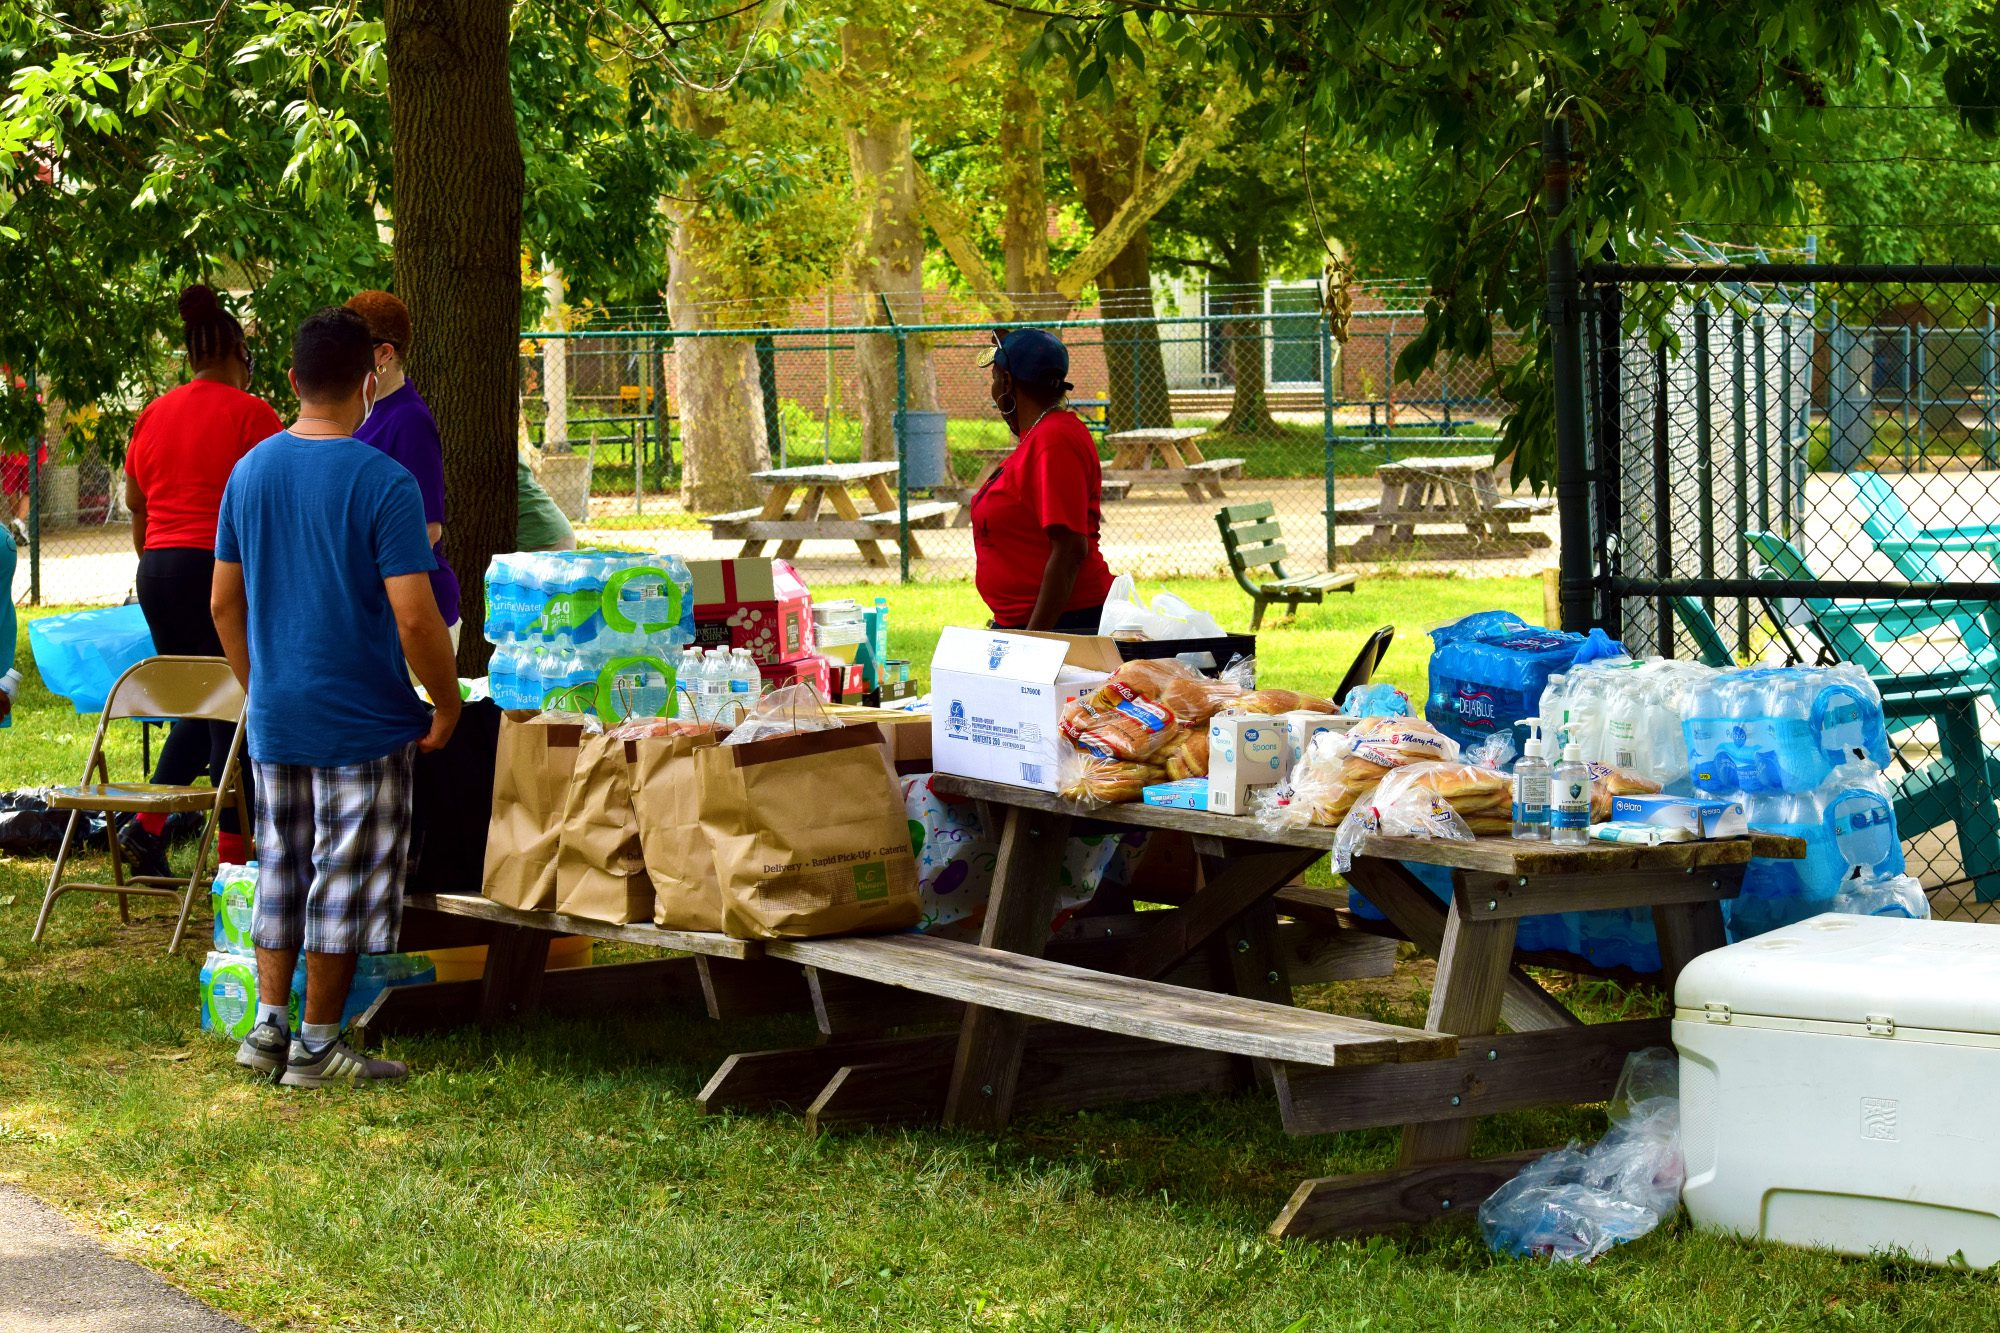 Free food and drinks for attendees at Marquette Community Day in Dutchtown, St. Louis, MO.